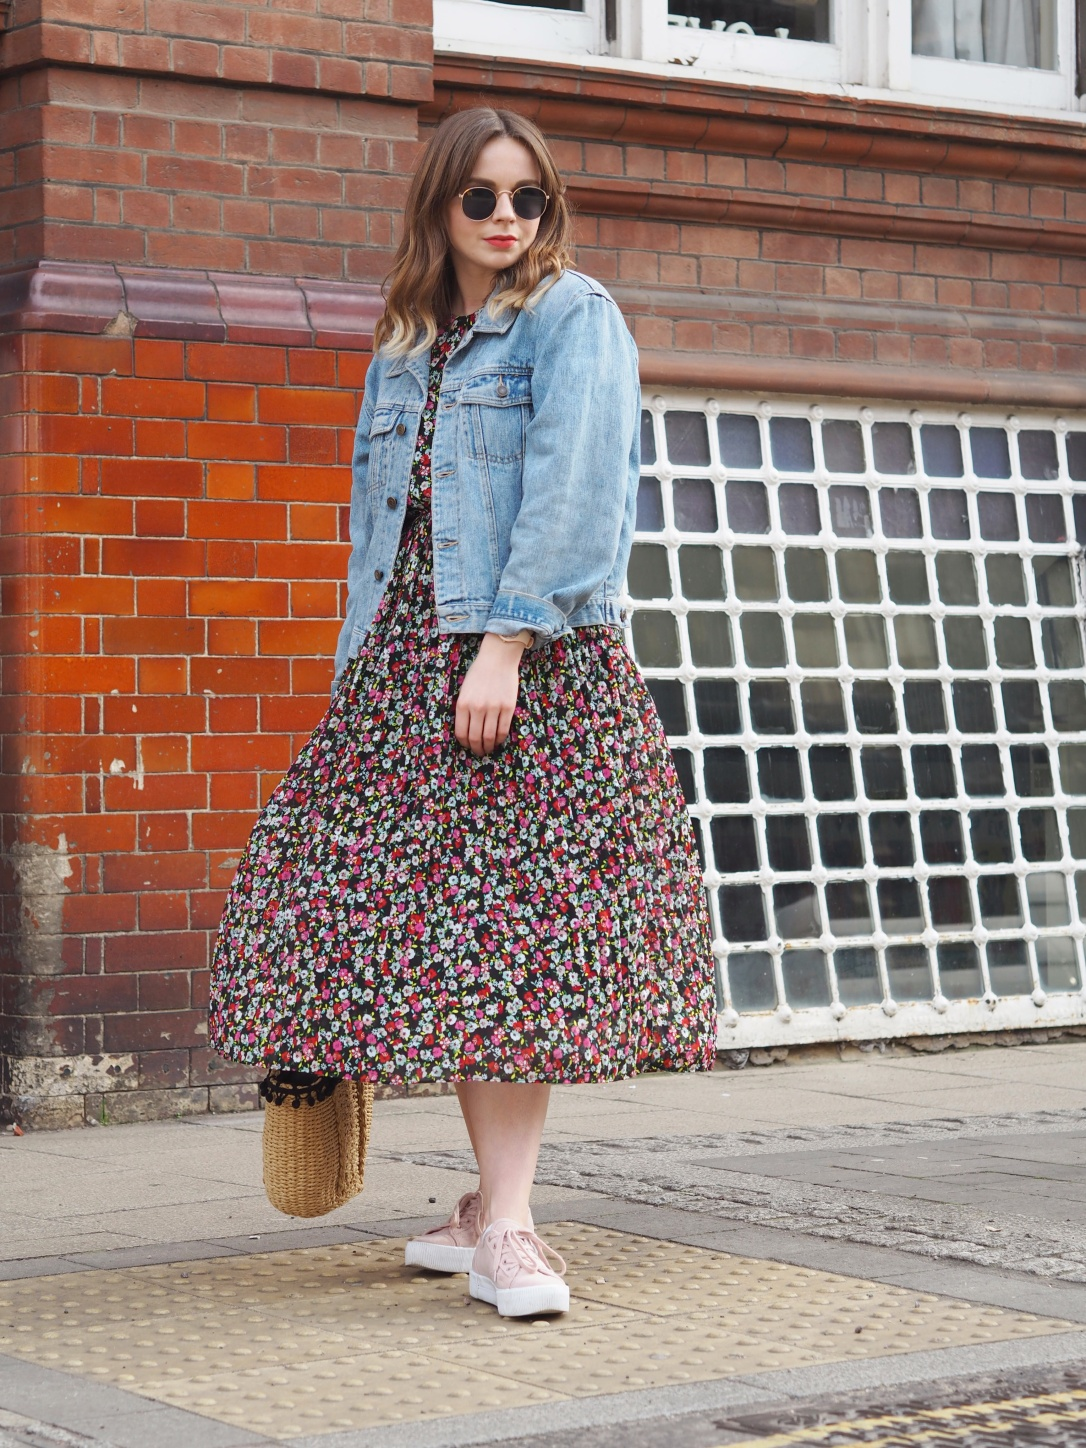 Floral midi dress denim jacket